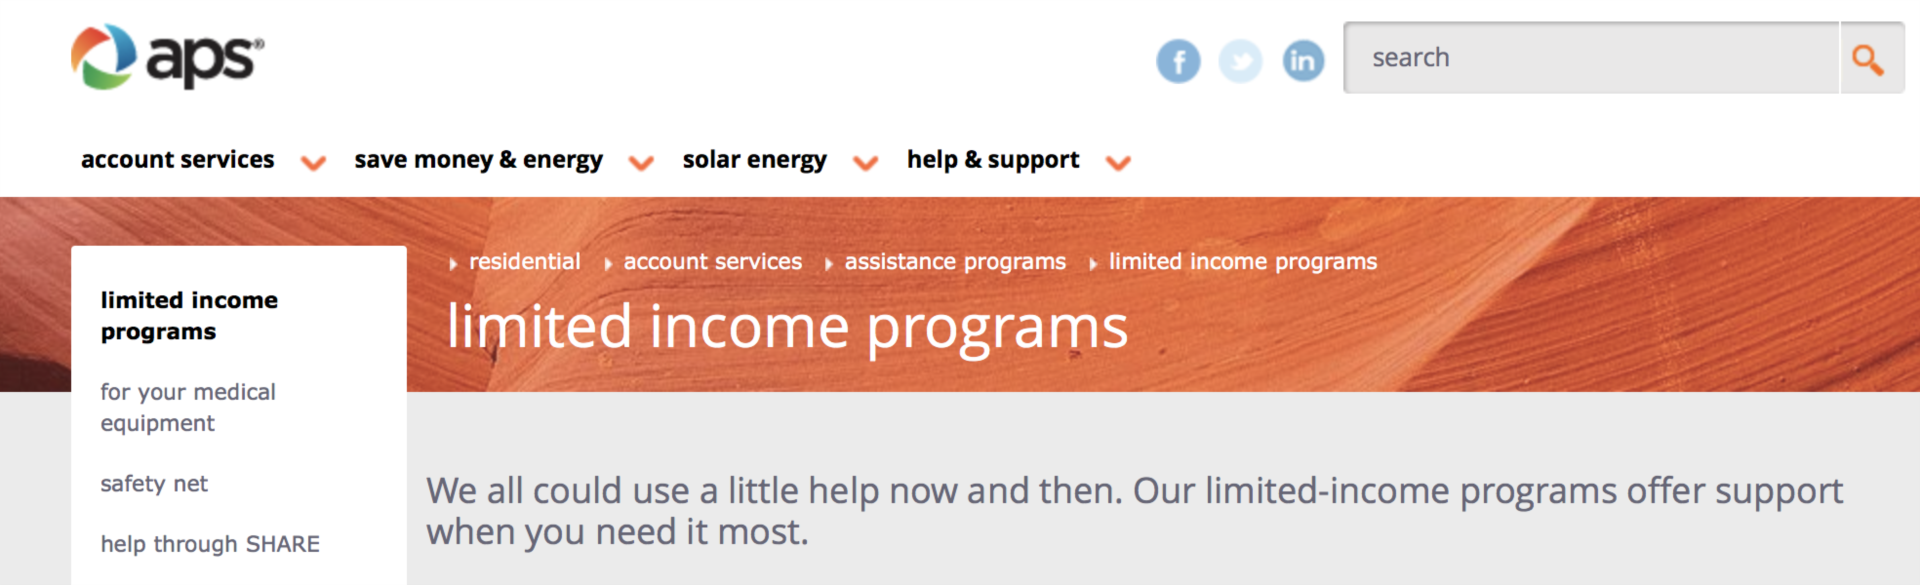 Aps low income program header